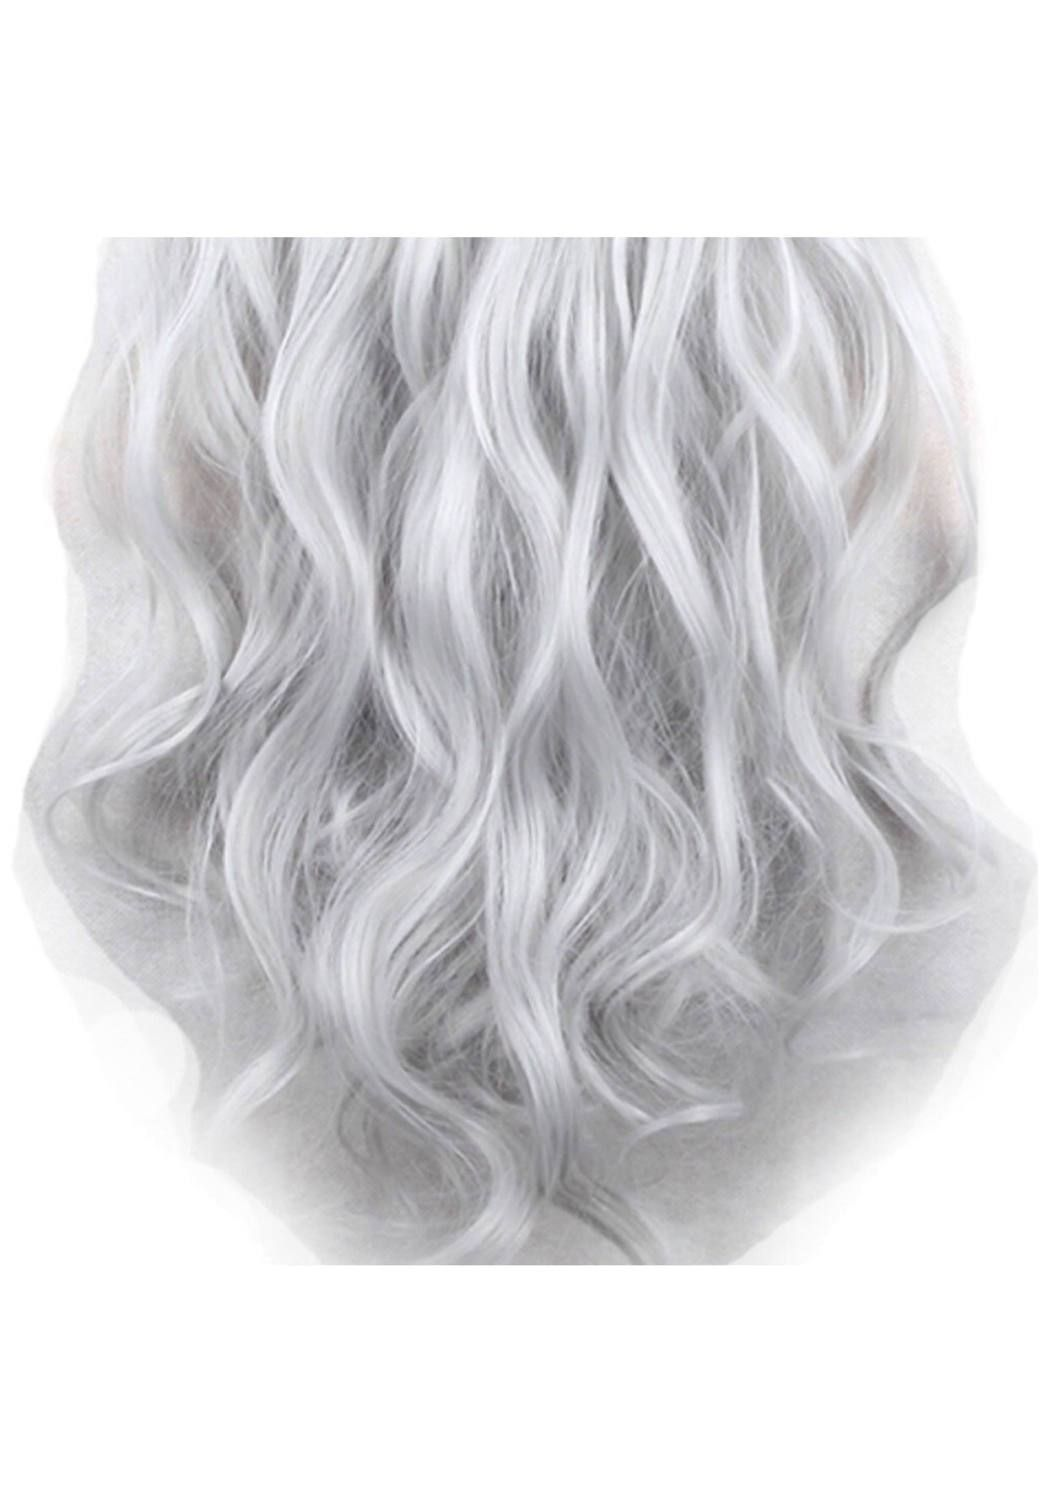 Product Info Hair Color Silver Hair Hair Attachment Clip In Hair